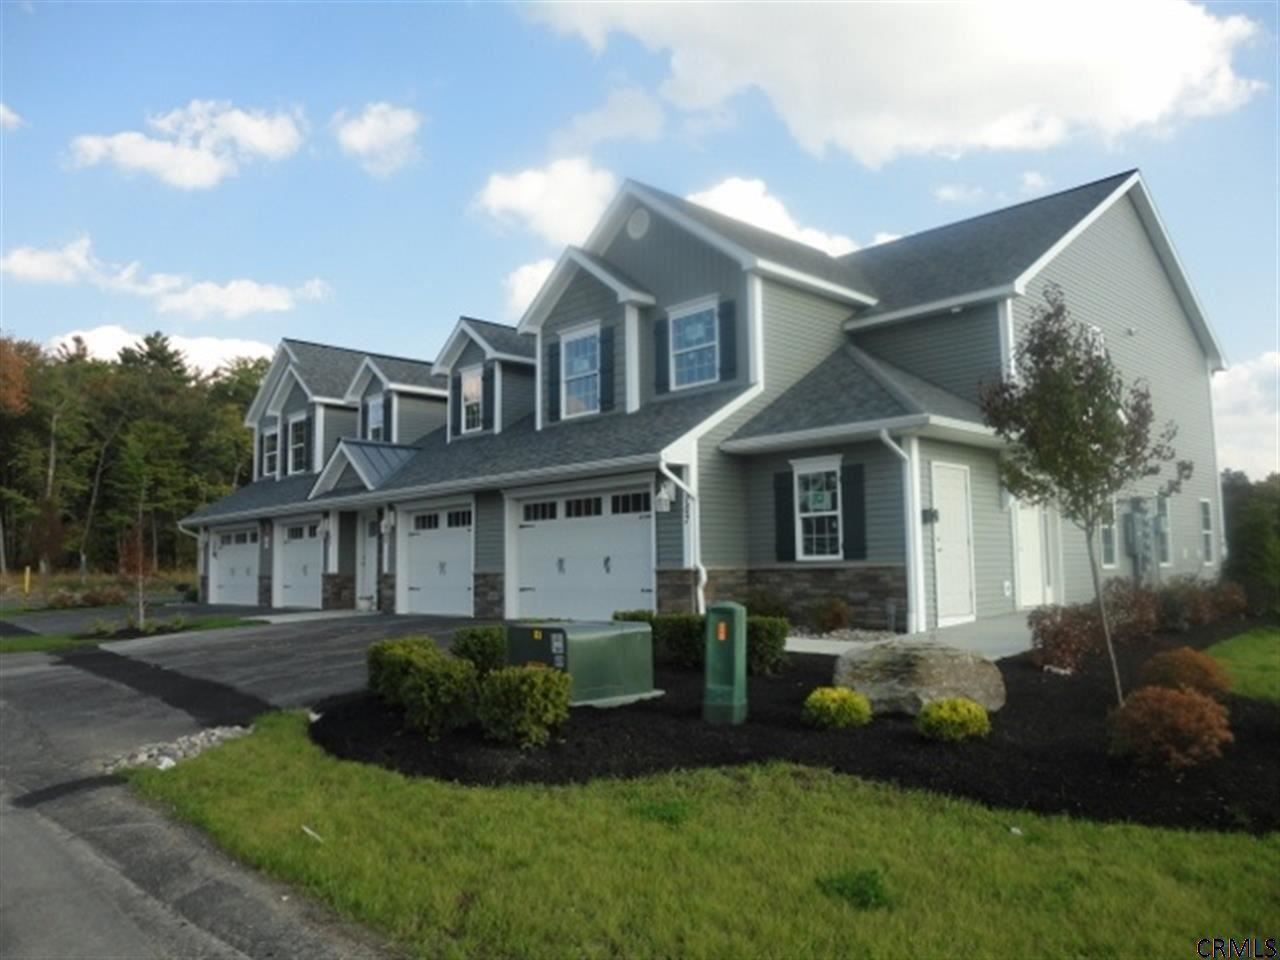 902 brunswick meadow way brunswick ny 12180 mls 201623908 redfin - The mobile home in the meadow ...